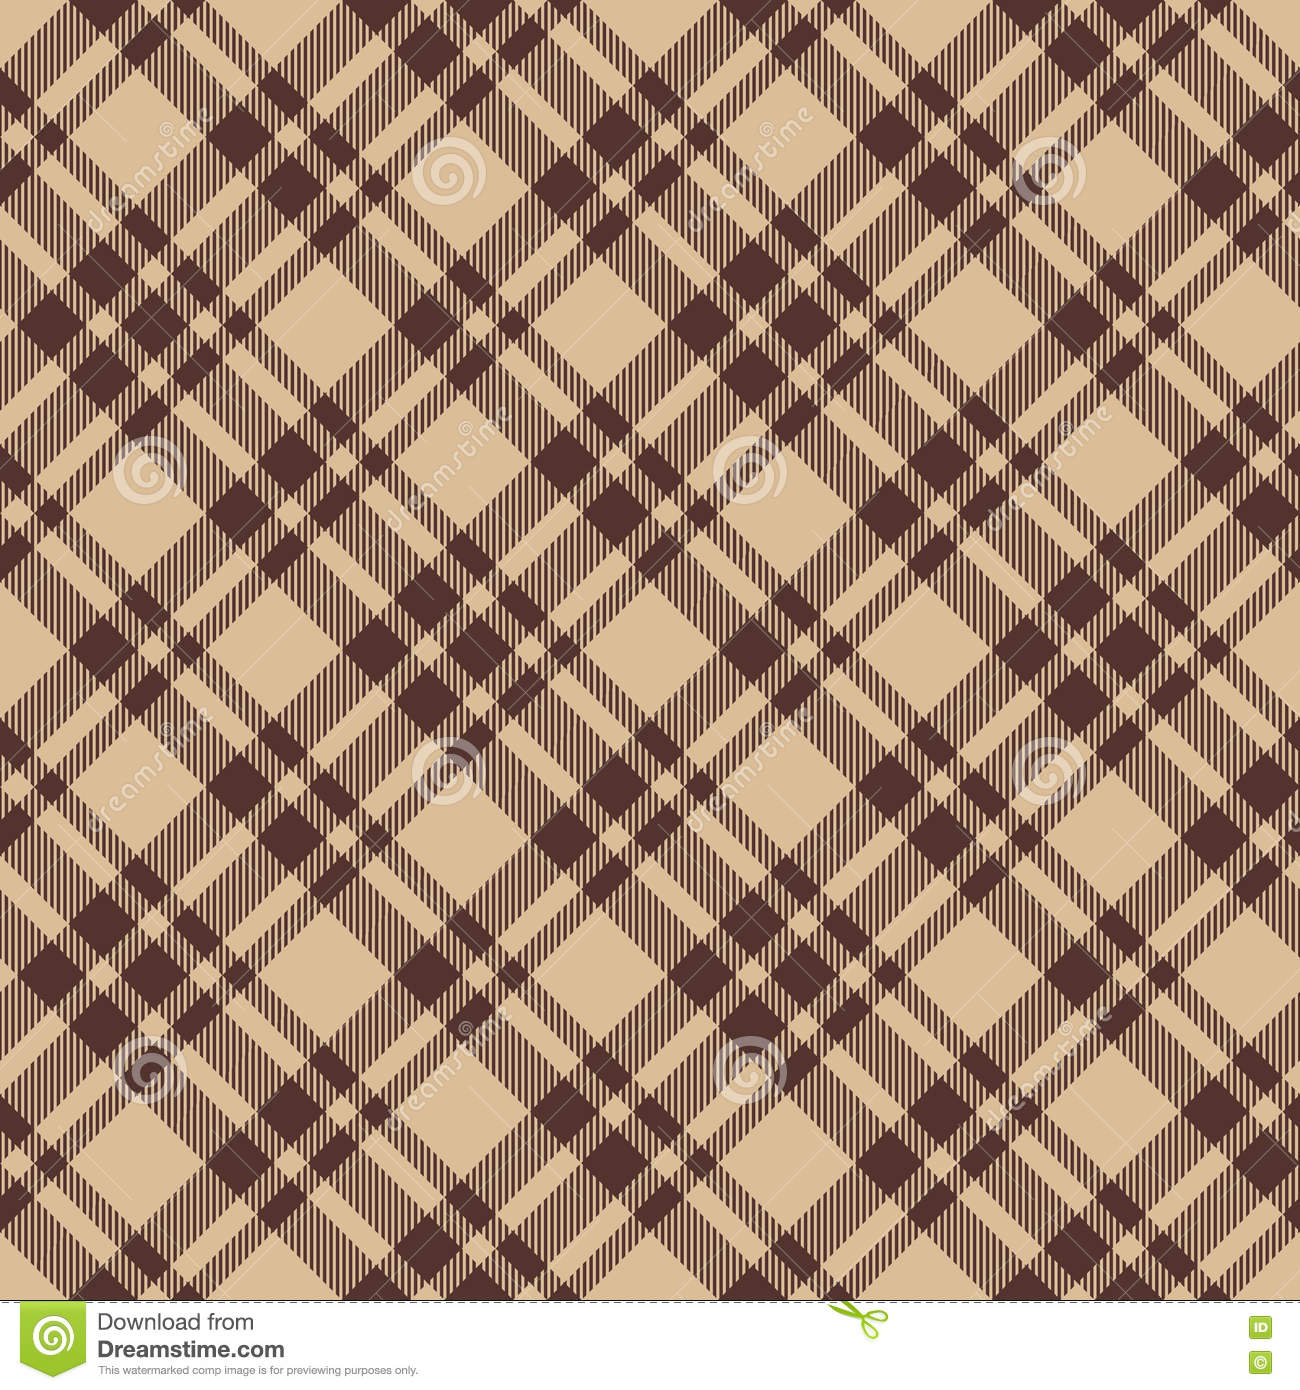 Brown Seamless Fabric Textures Beige Brown Diagonal Check Plaid Seamless Fabric Texture Stock